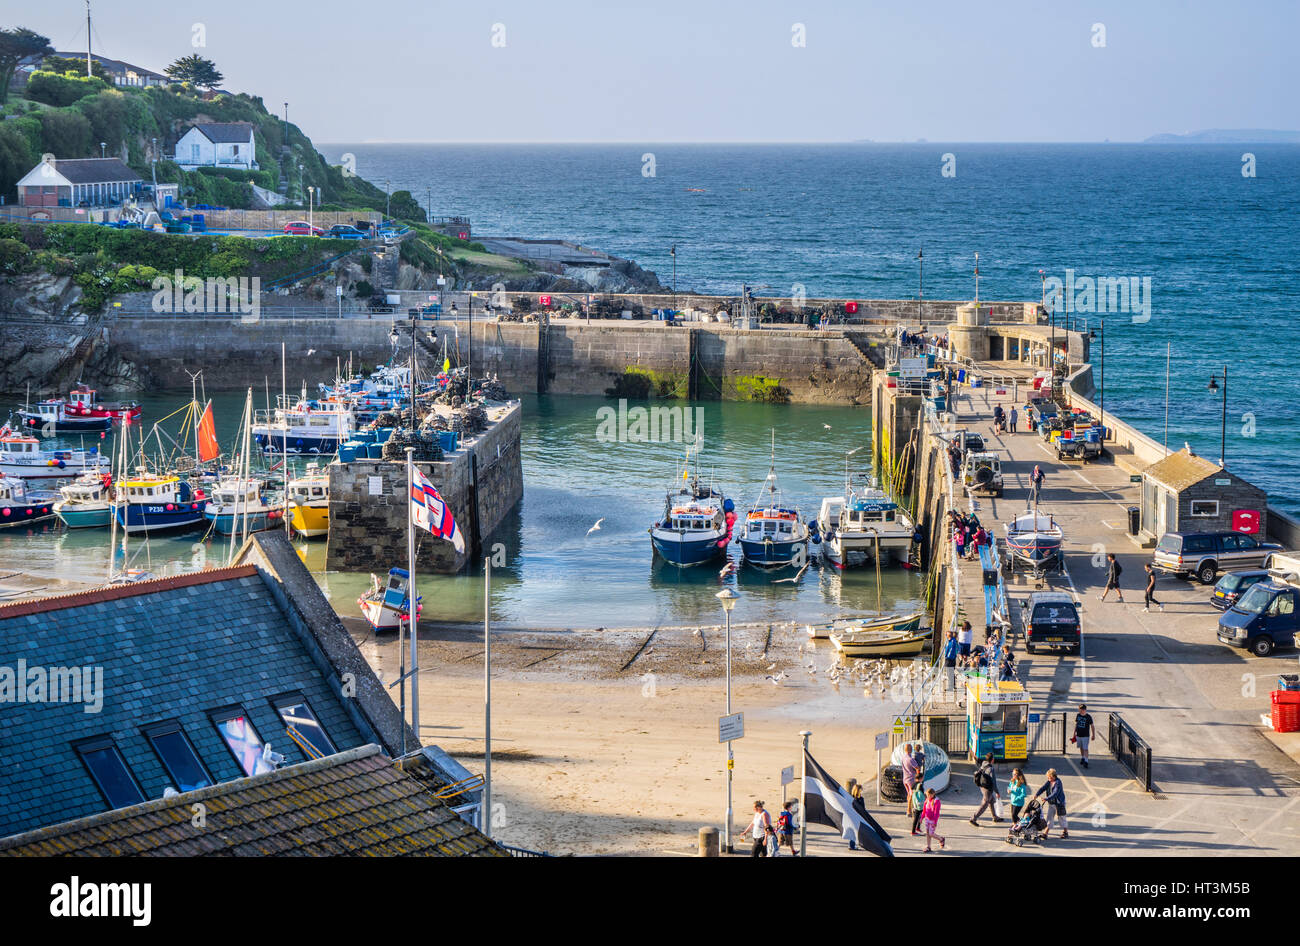 United Kingdom, South West England, Cornwall, Newquay, view of Newquay Harbour at low tide - Stock Image